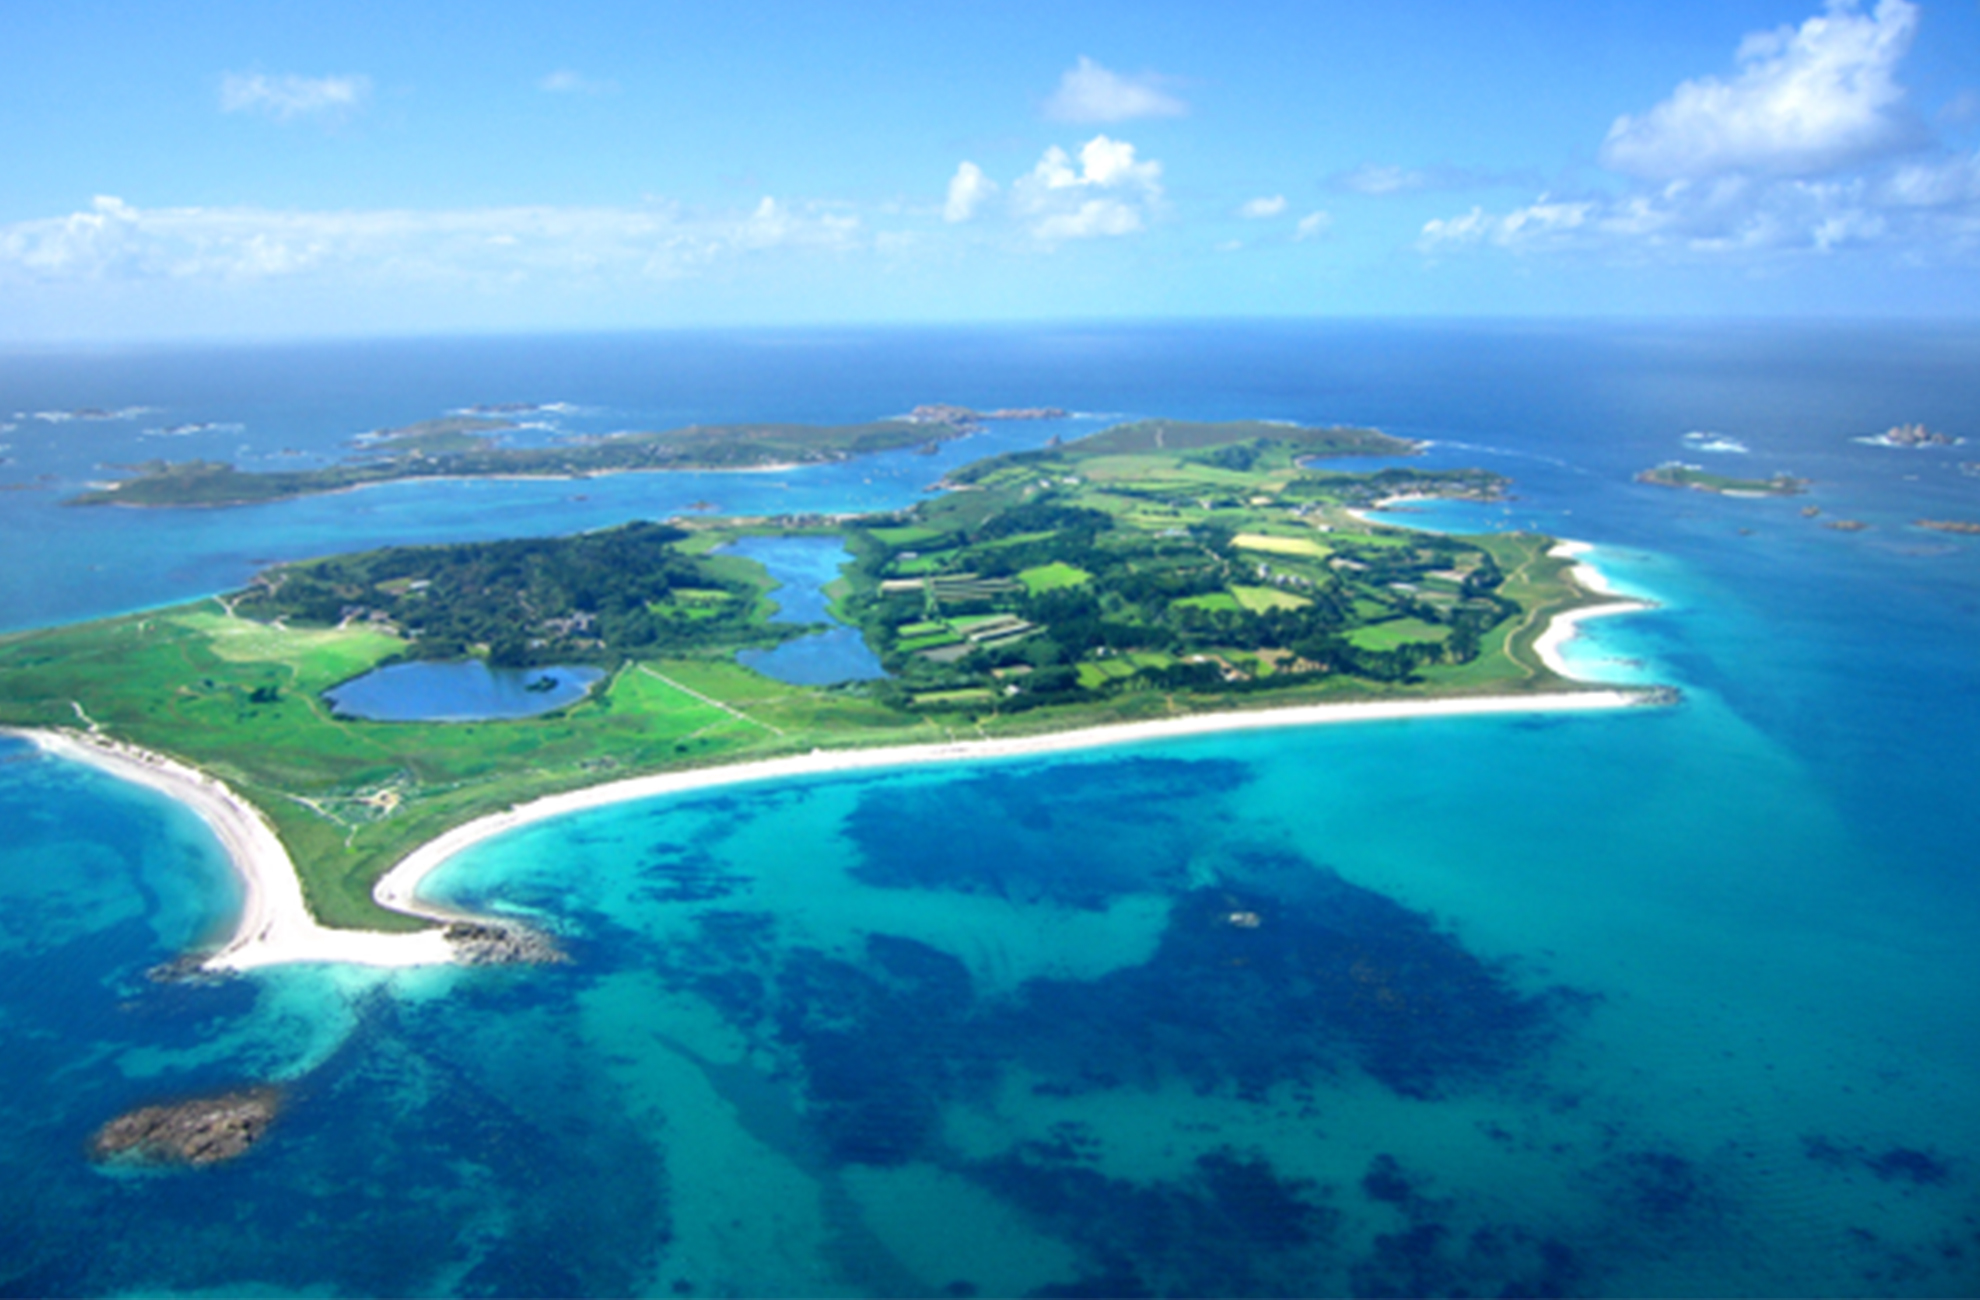 Isles of Scilly would make a great honeymoon location